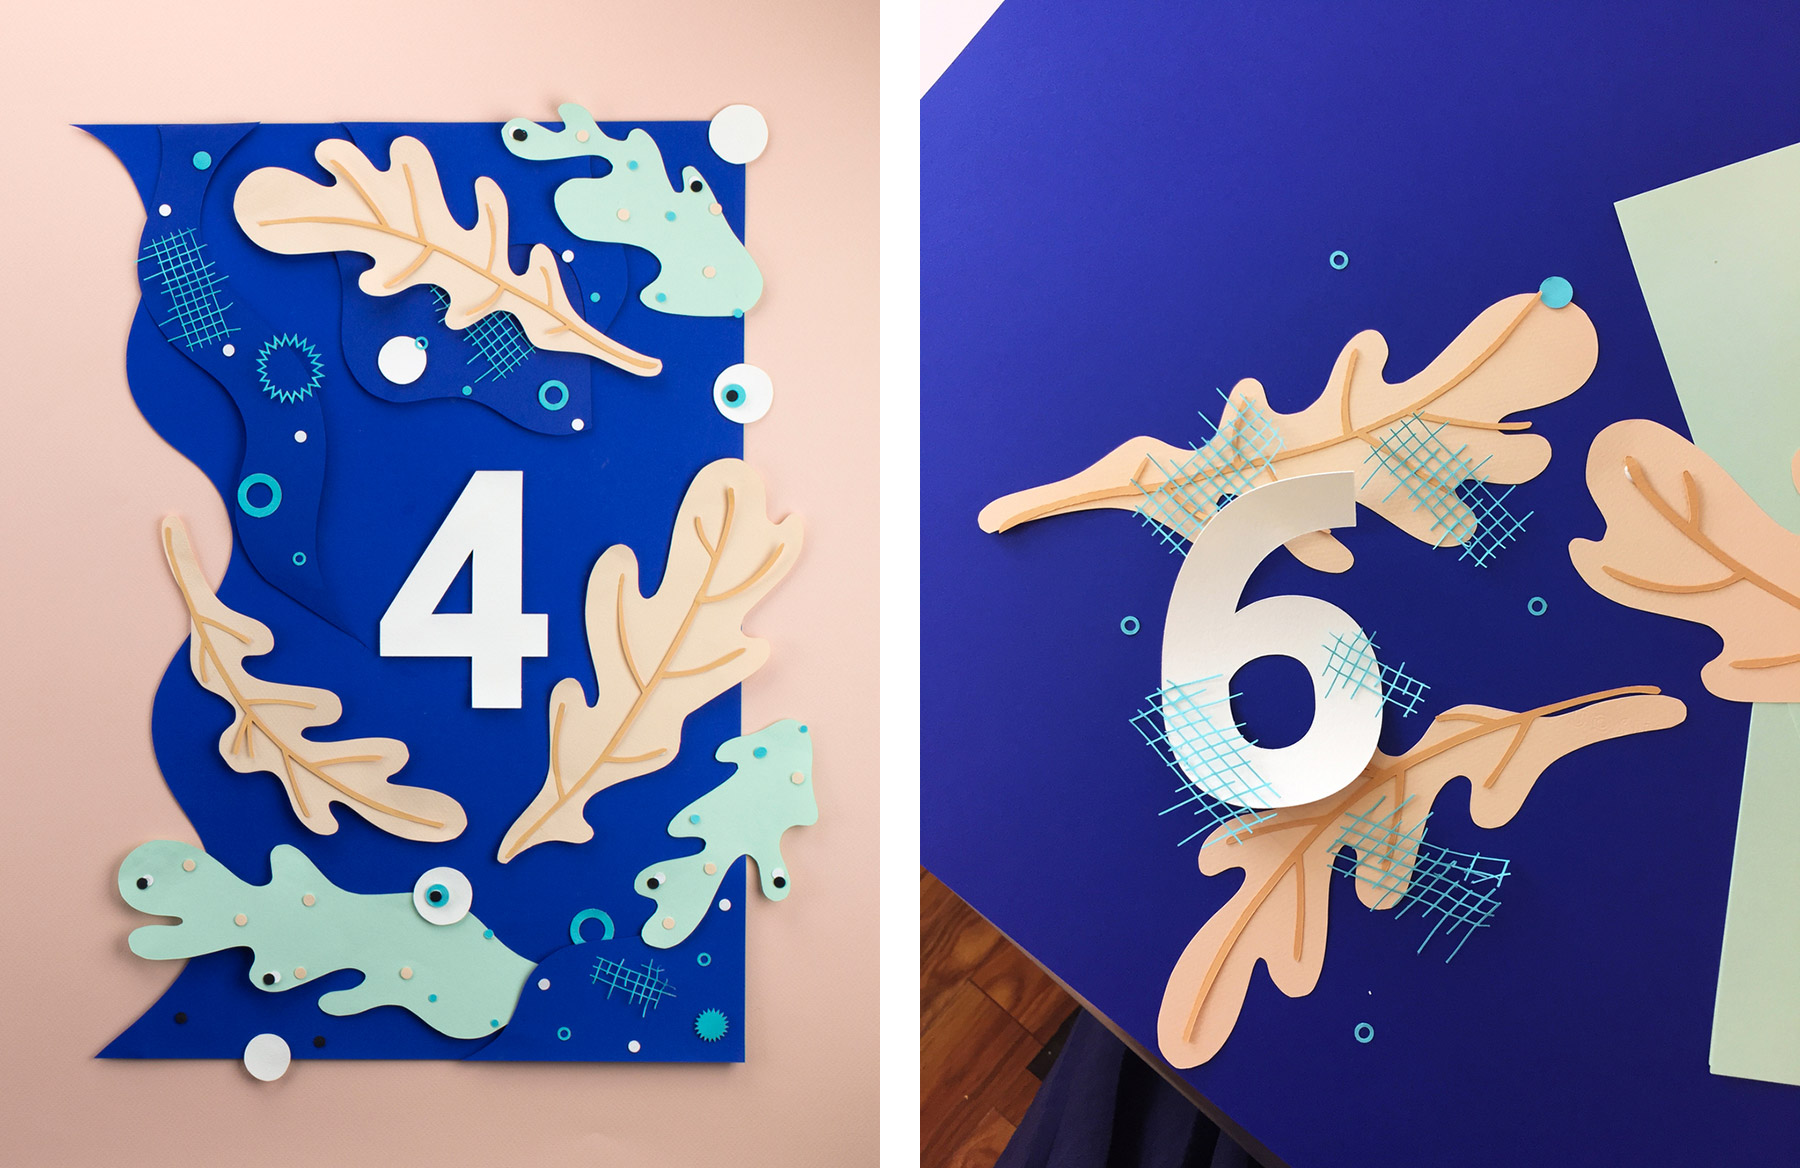 Papercraft countdown by Nicole Licht. Two images show a 4 and a 6 surrounded by stylized leaves.